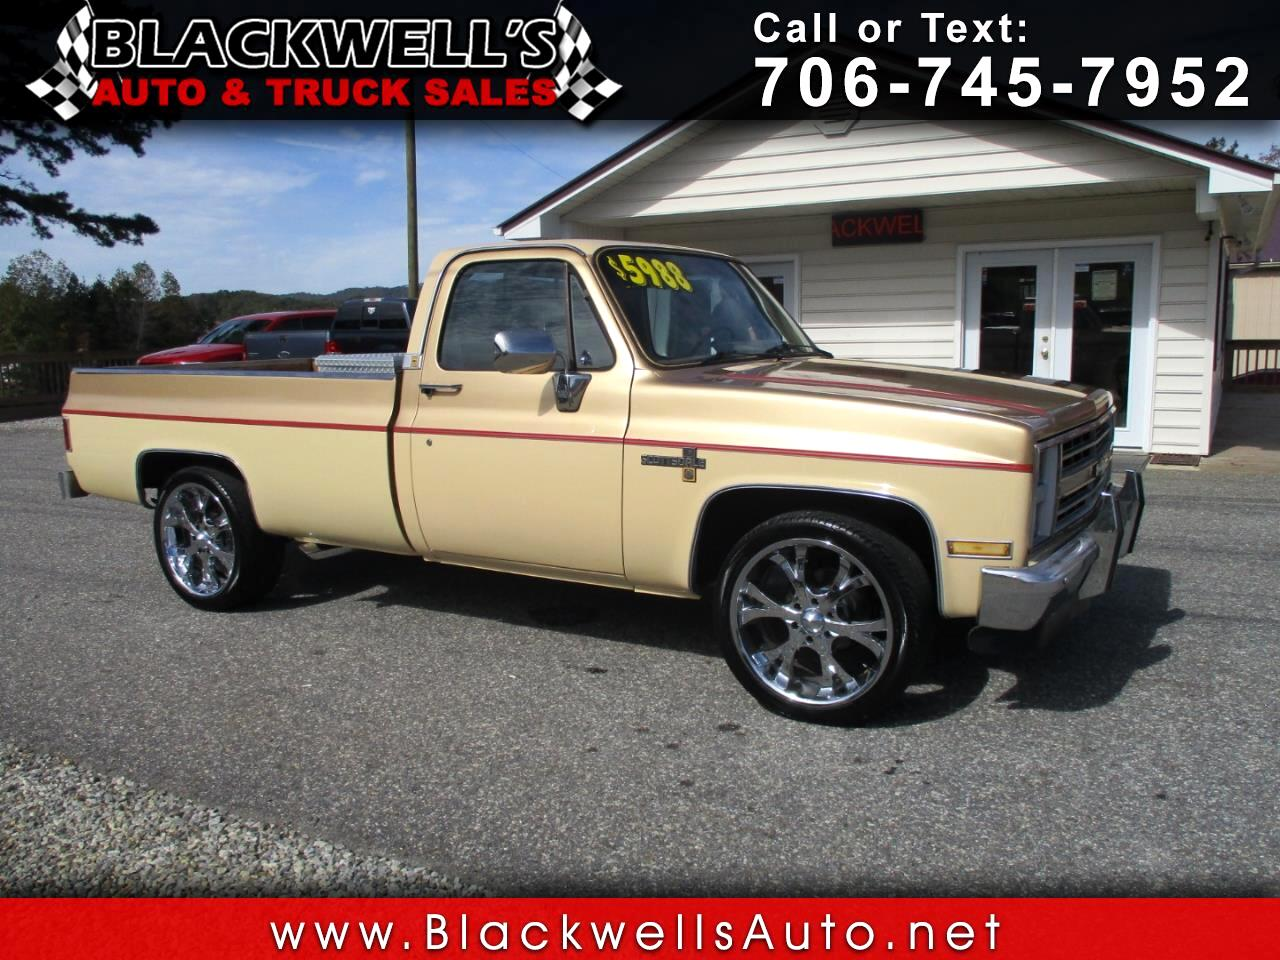 1985 Chevrolet Pickup C10 Fleetside 117.5